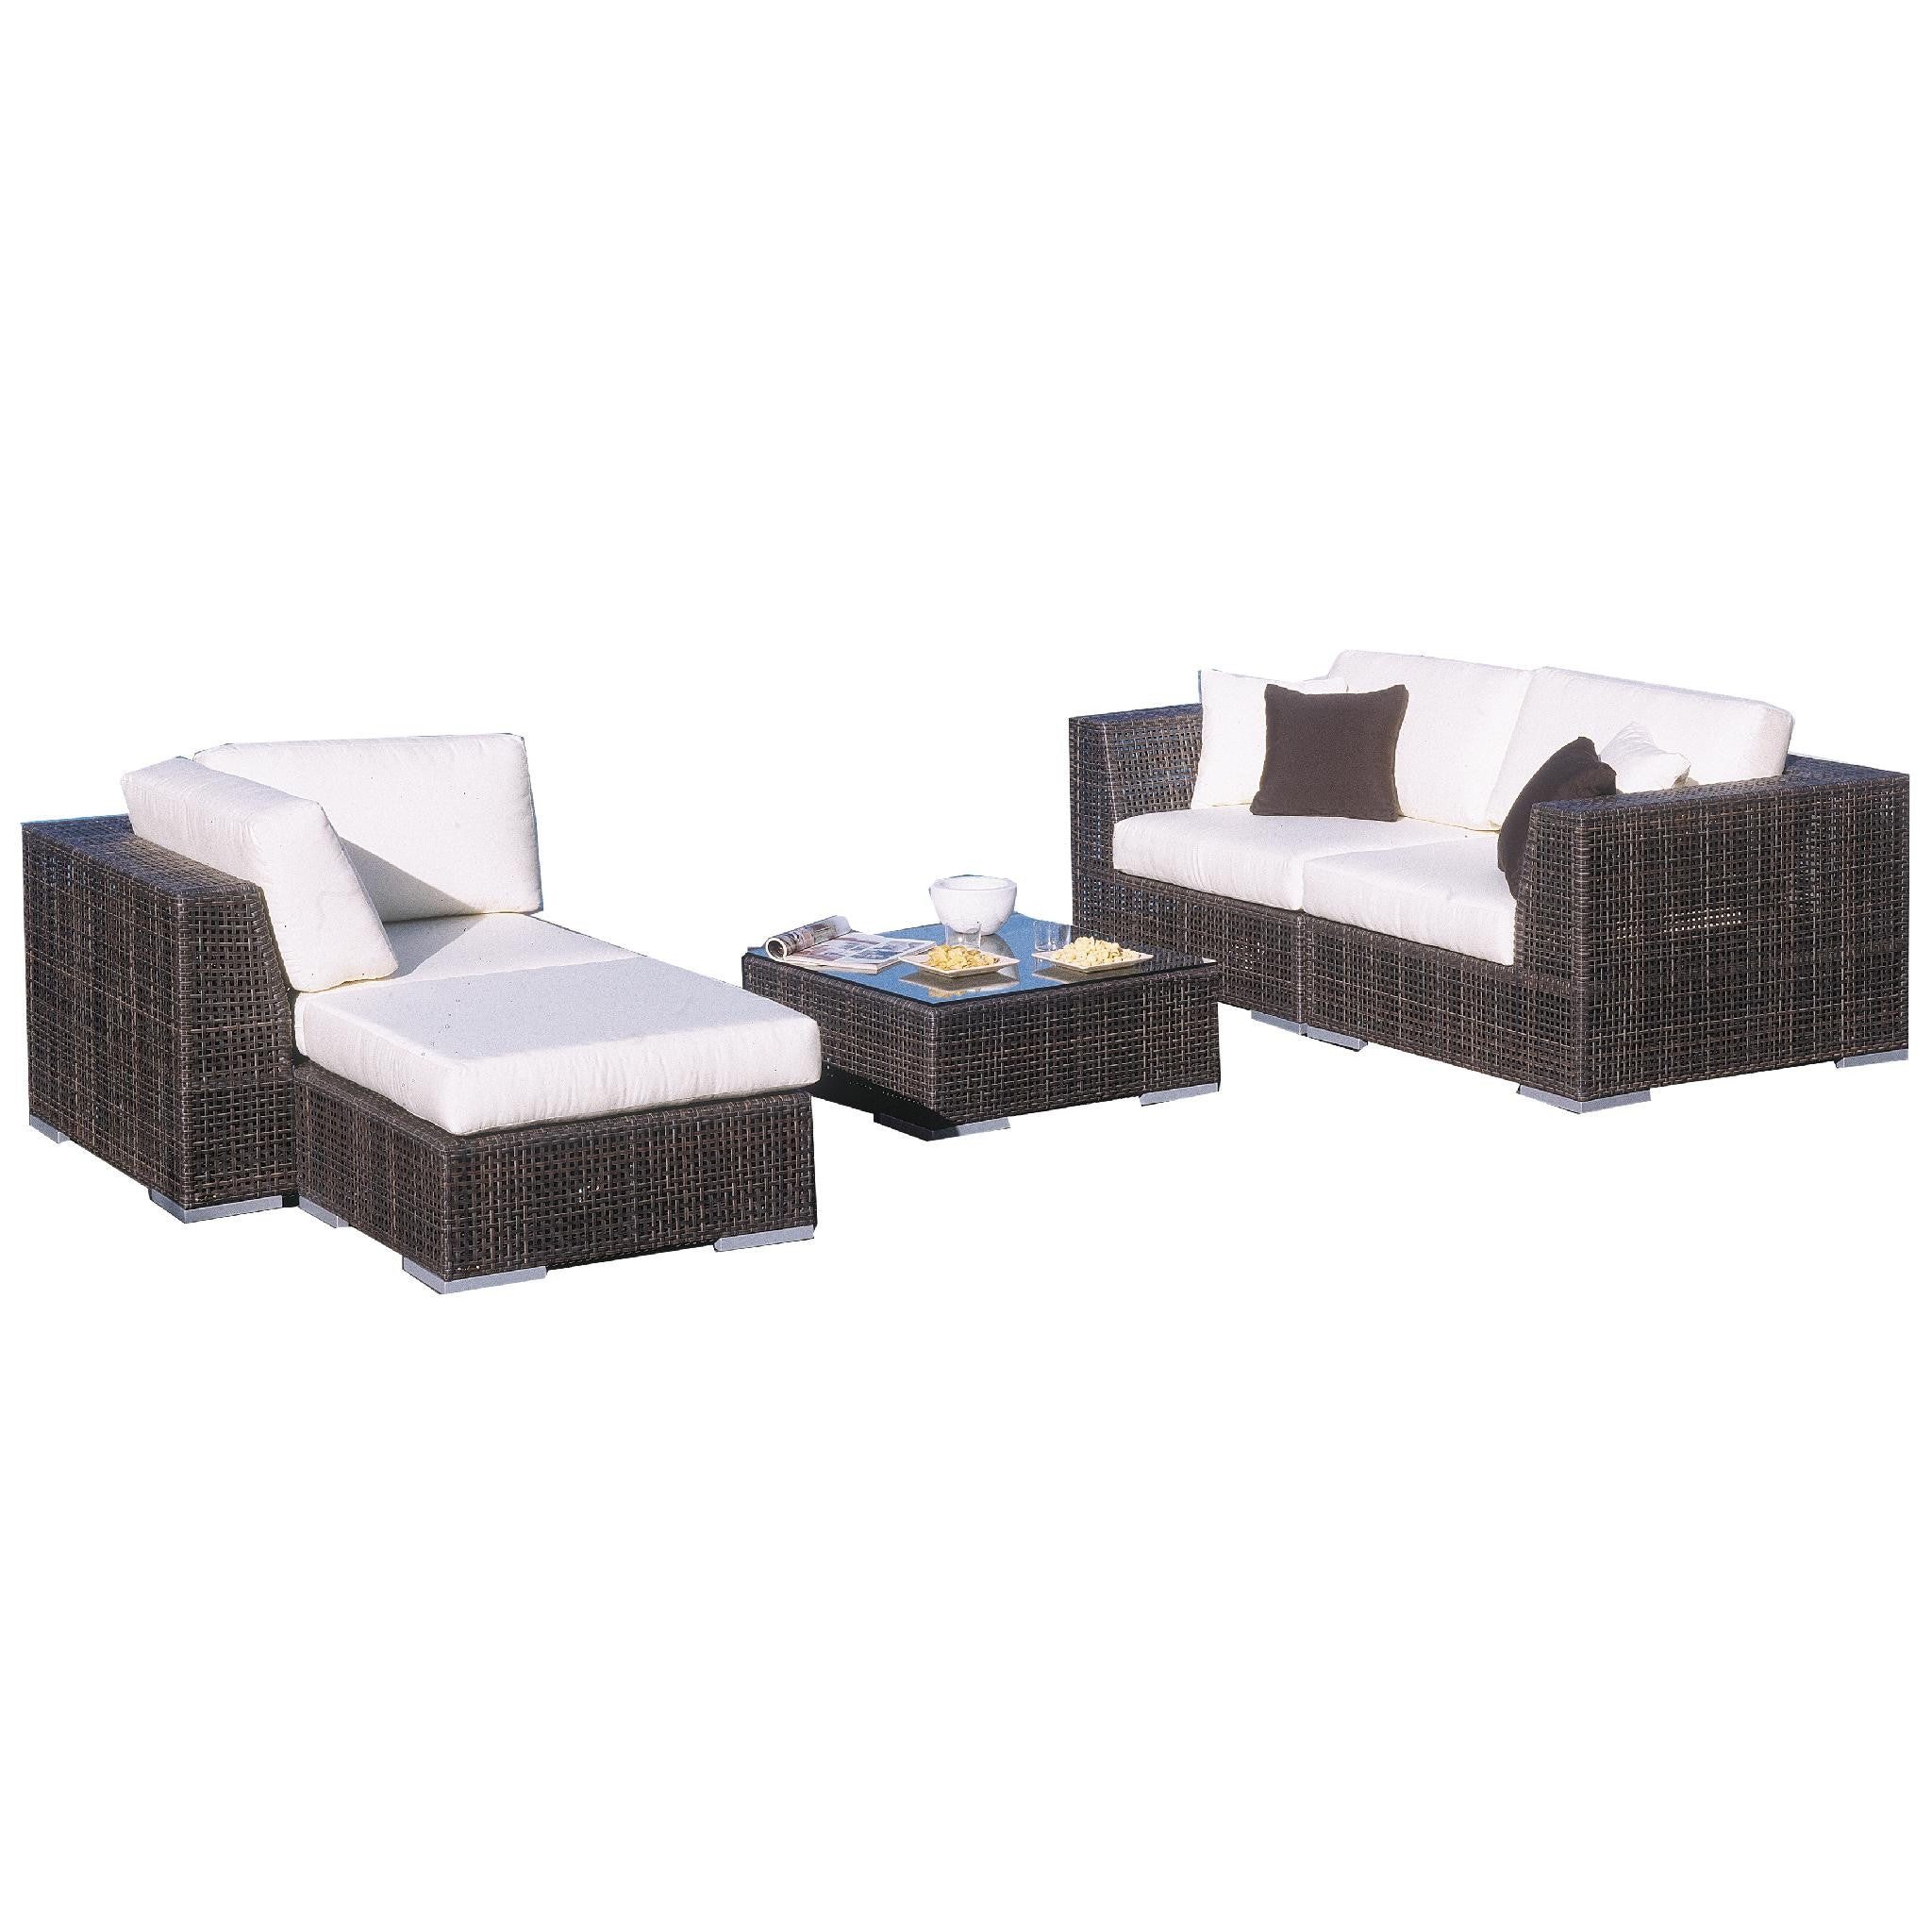 """Sectional Sets tagged """"Soho"""" BetterPatio"""